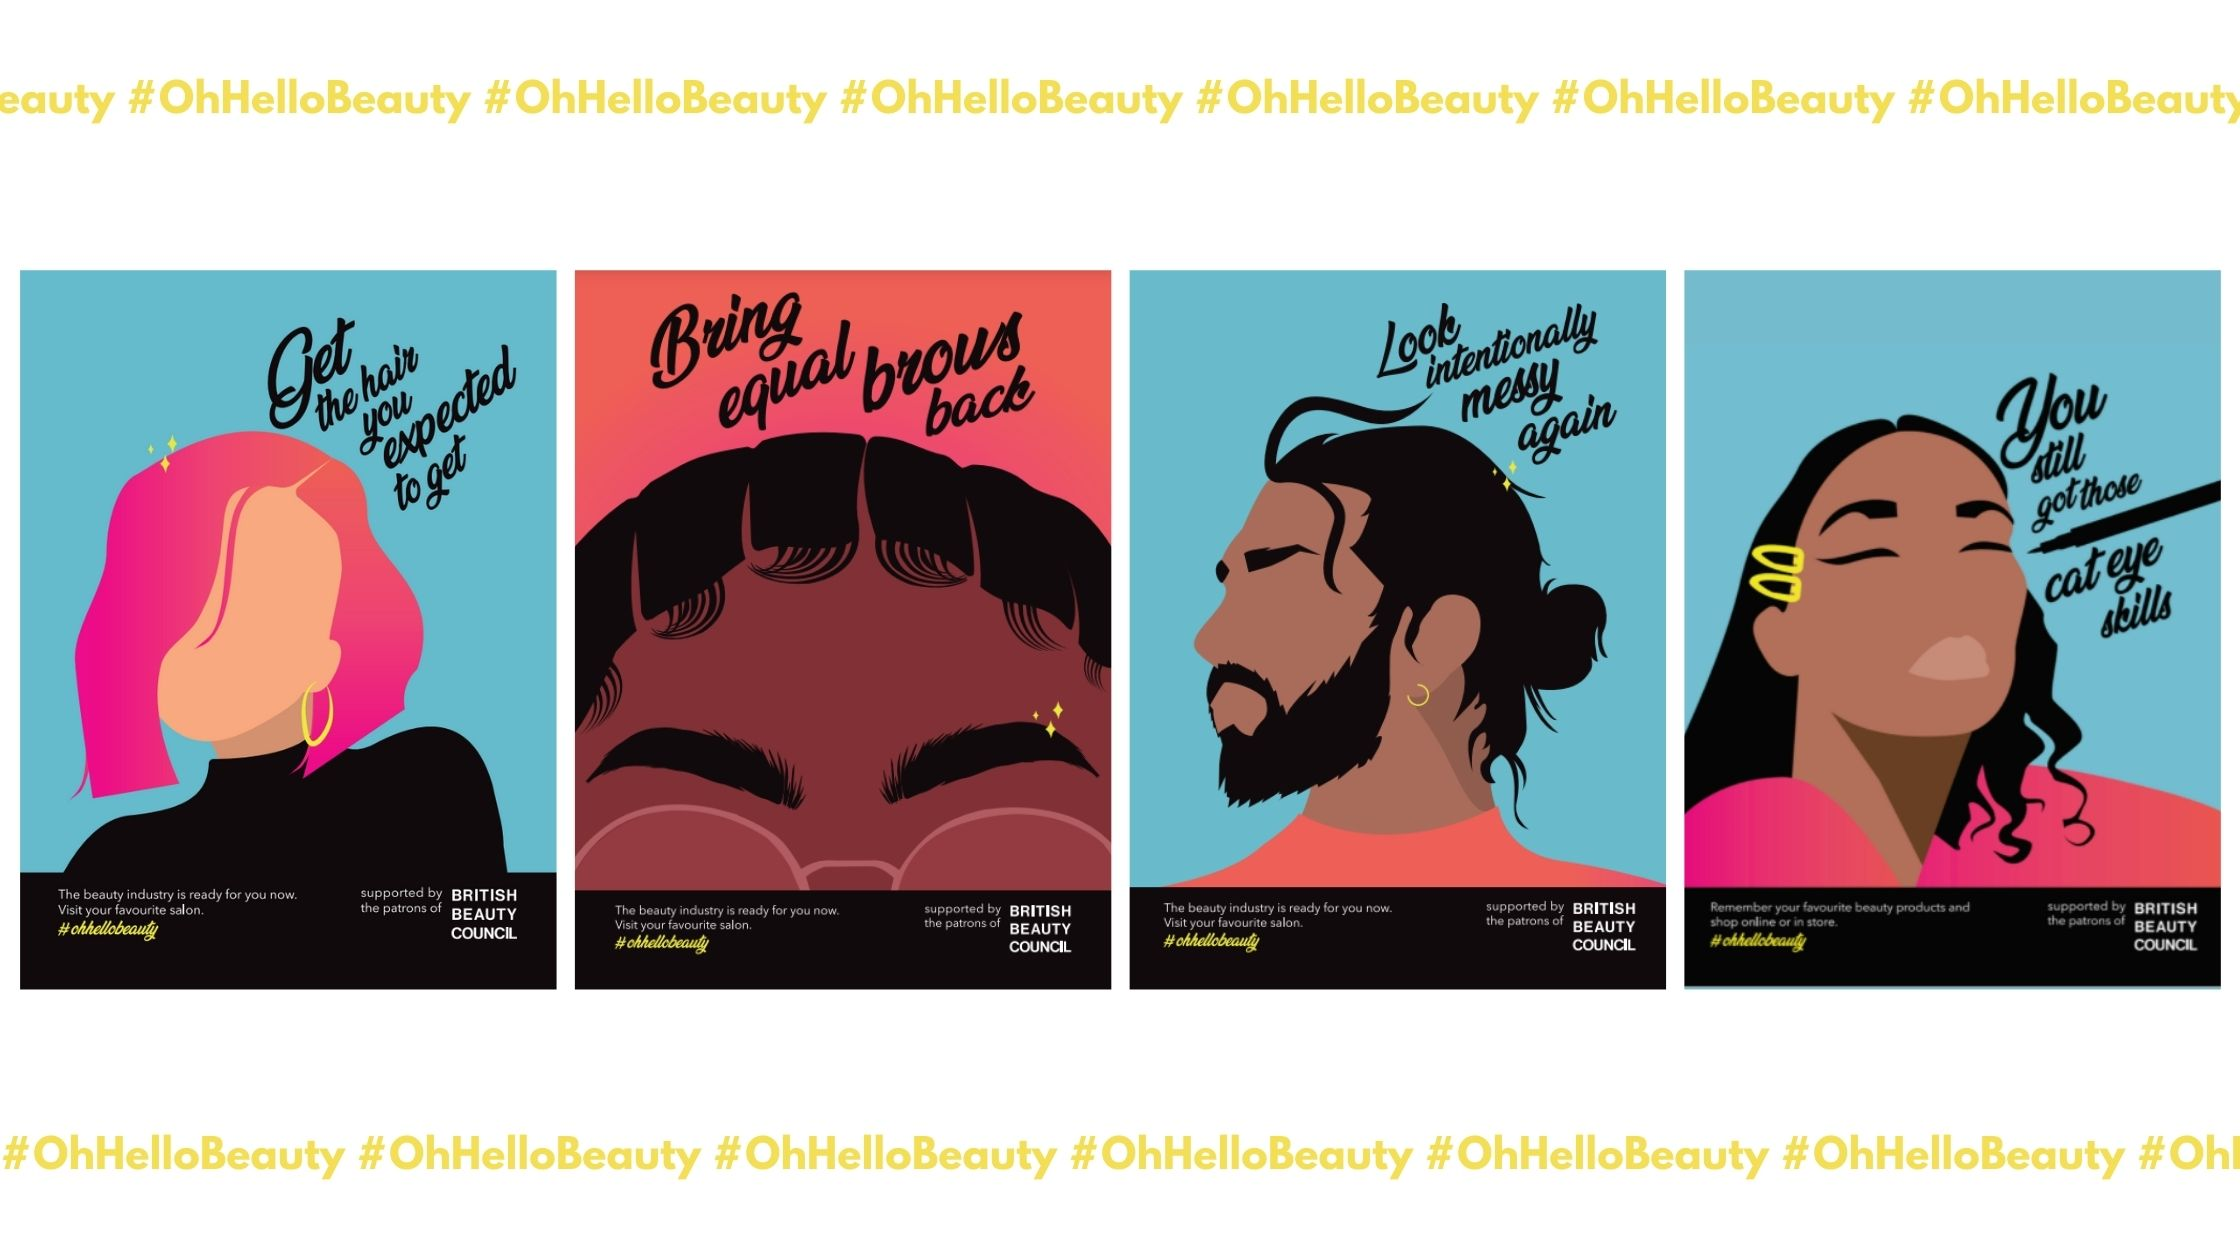 British Beauty Council launches Oh Hello Beauty Campaign - The British  Beauty Council